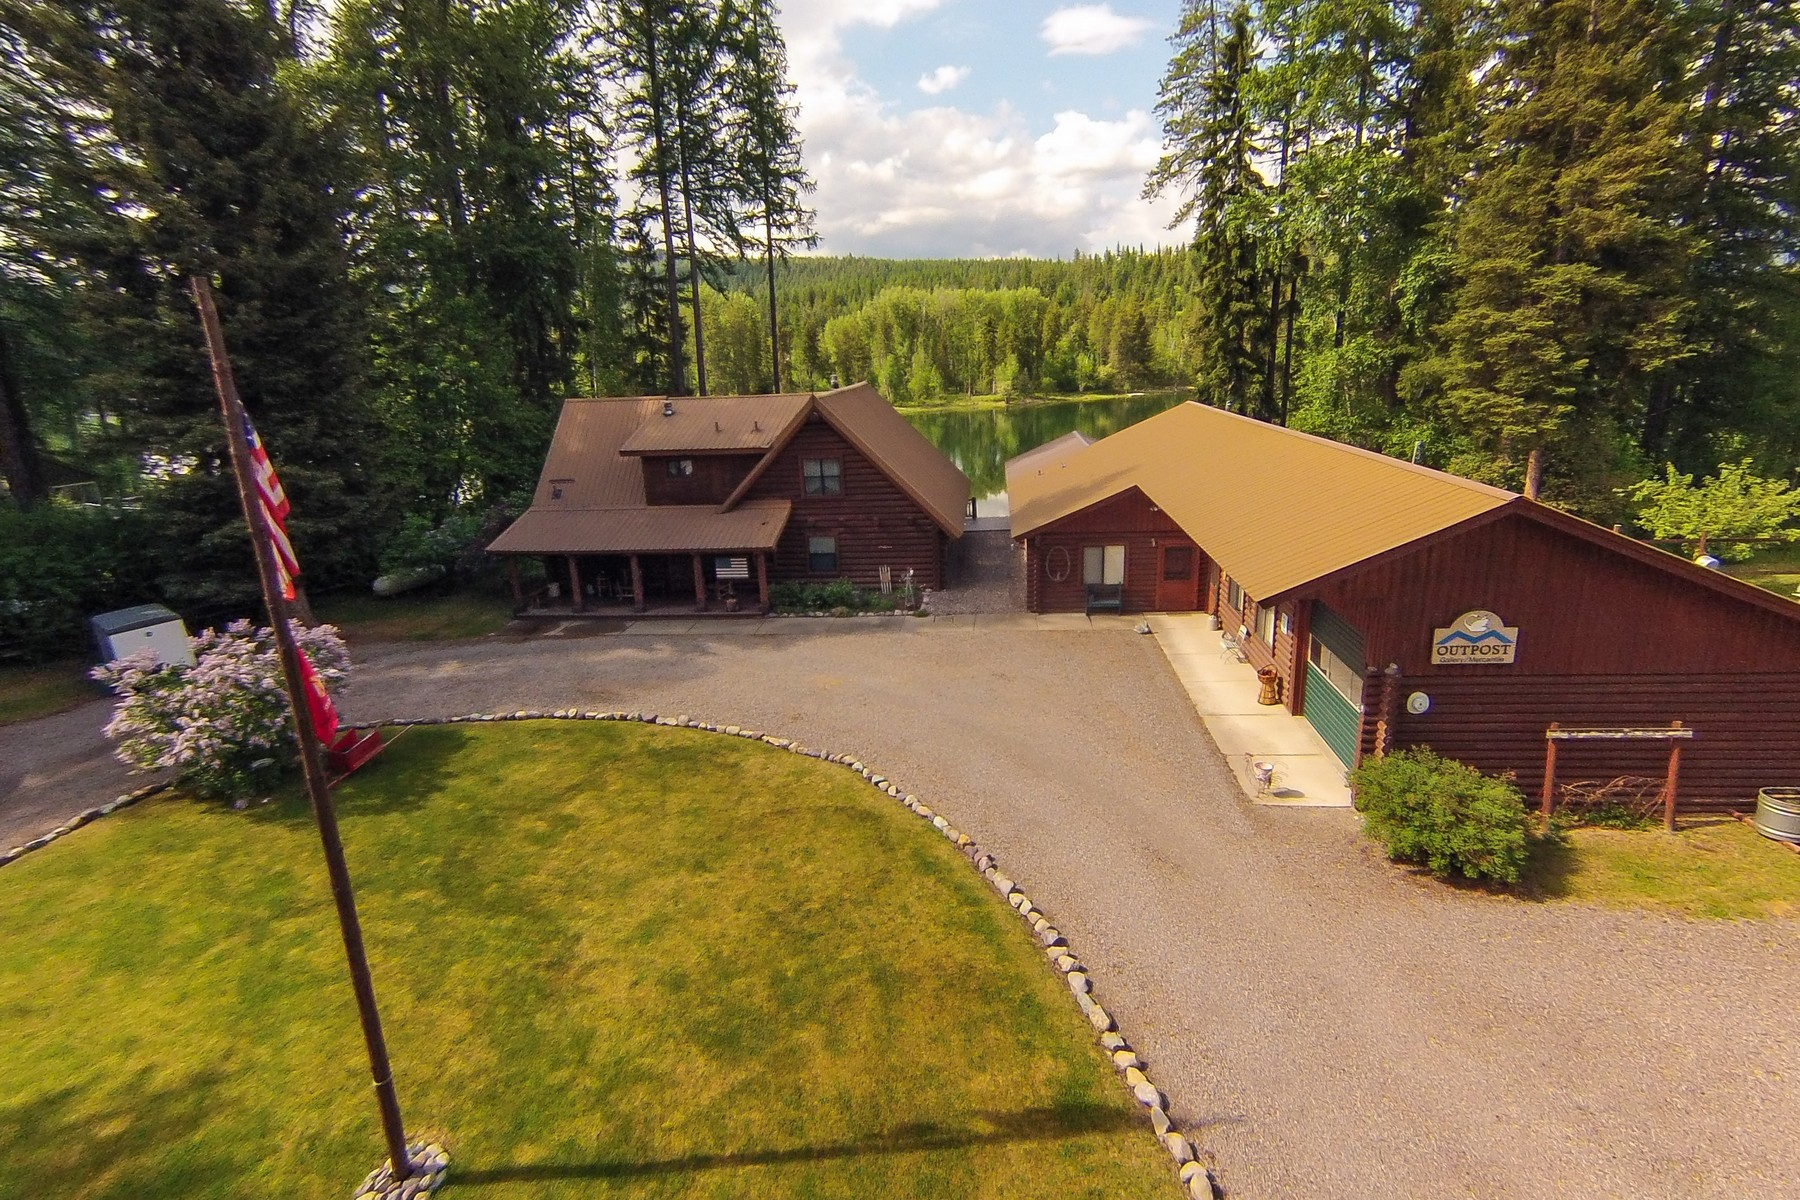 Maison unifamiliale pour l Vente à Swan River Log Home 1097 Mt Highway 209 Bigfork, Montana, 59911 États-Unis